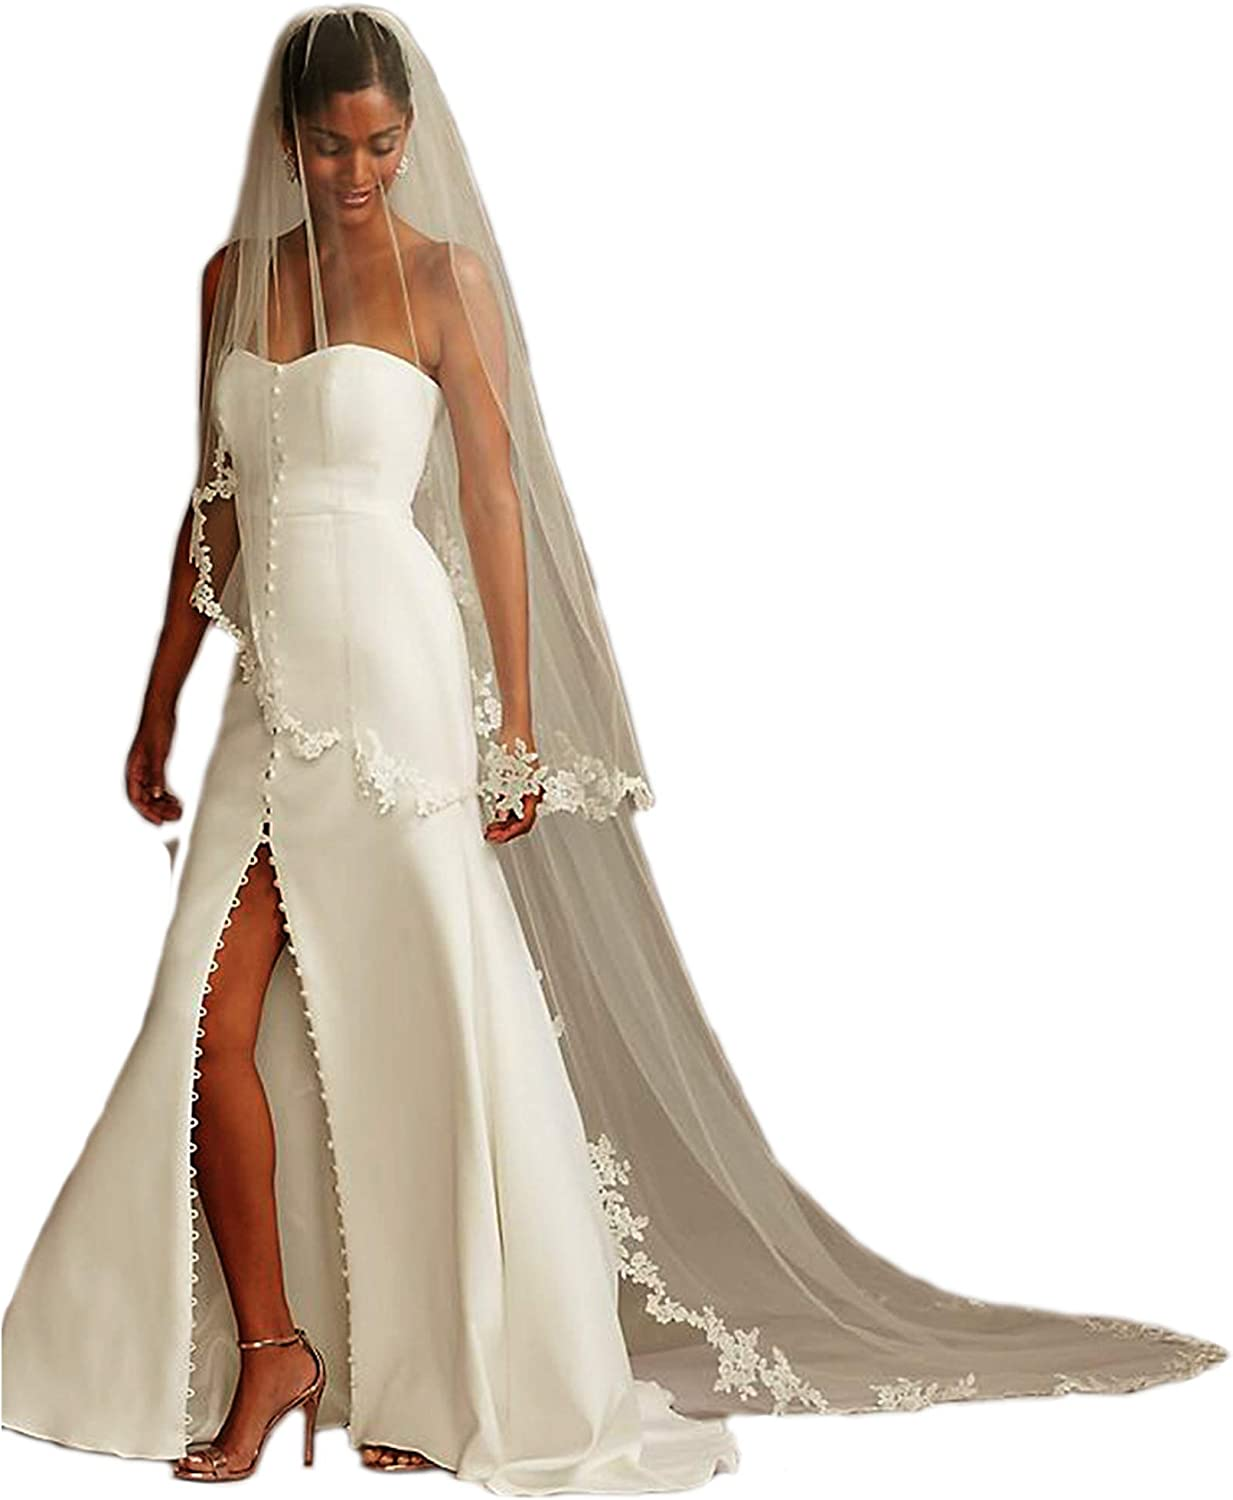 Passat 2M/3M Corded Lace Edge 2 Tier Ivory Lace Cathedral Wedding Veil Bridal Veil With Blusher 113